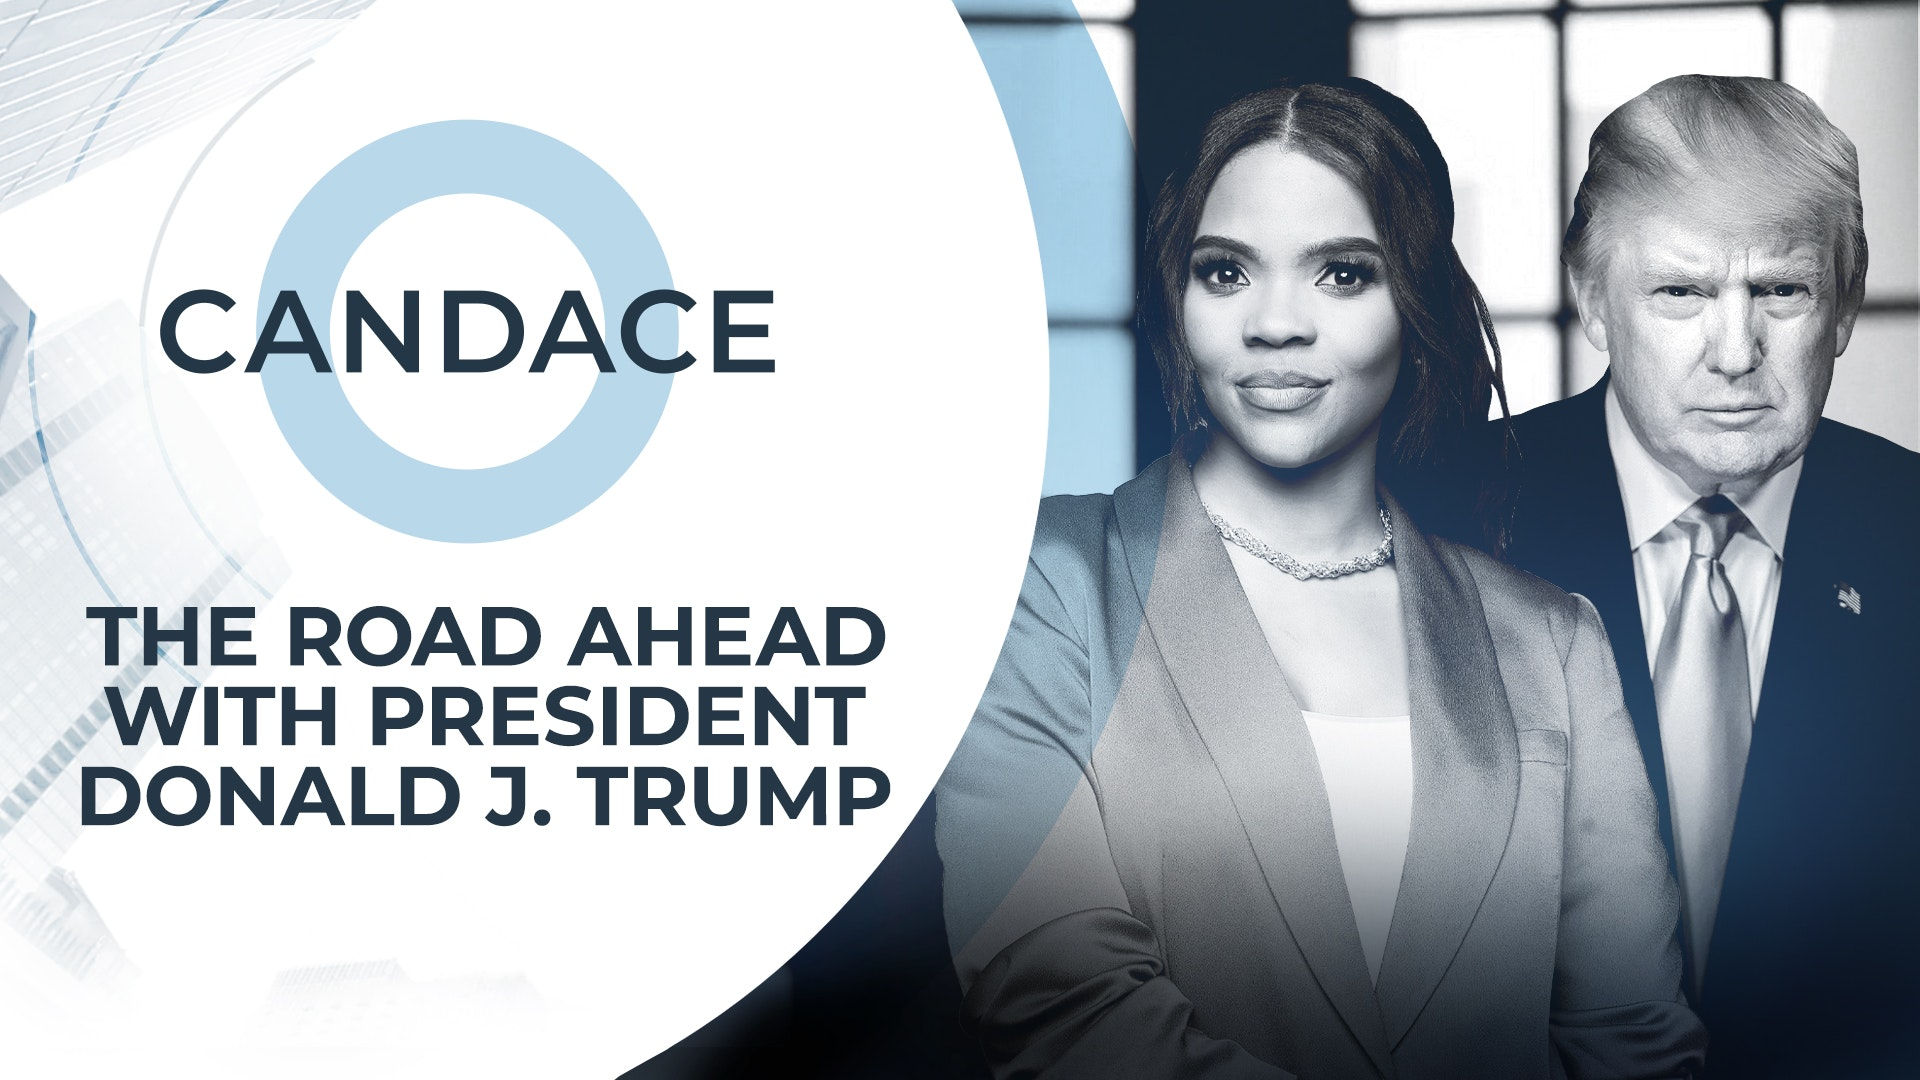 Episode 8 - The Road Ahead With President Donald J. Trump